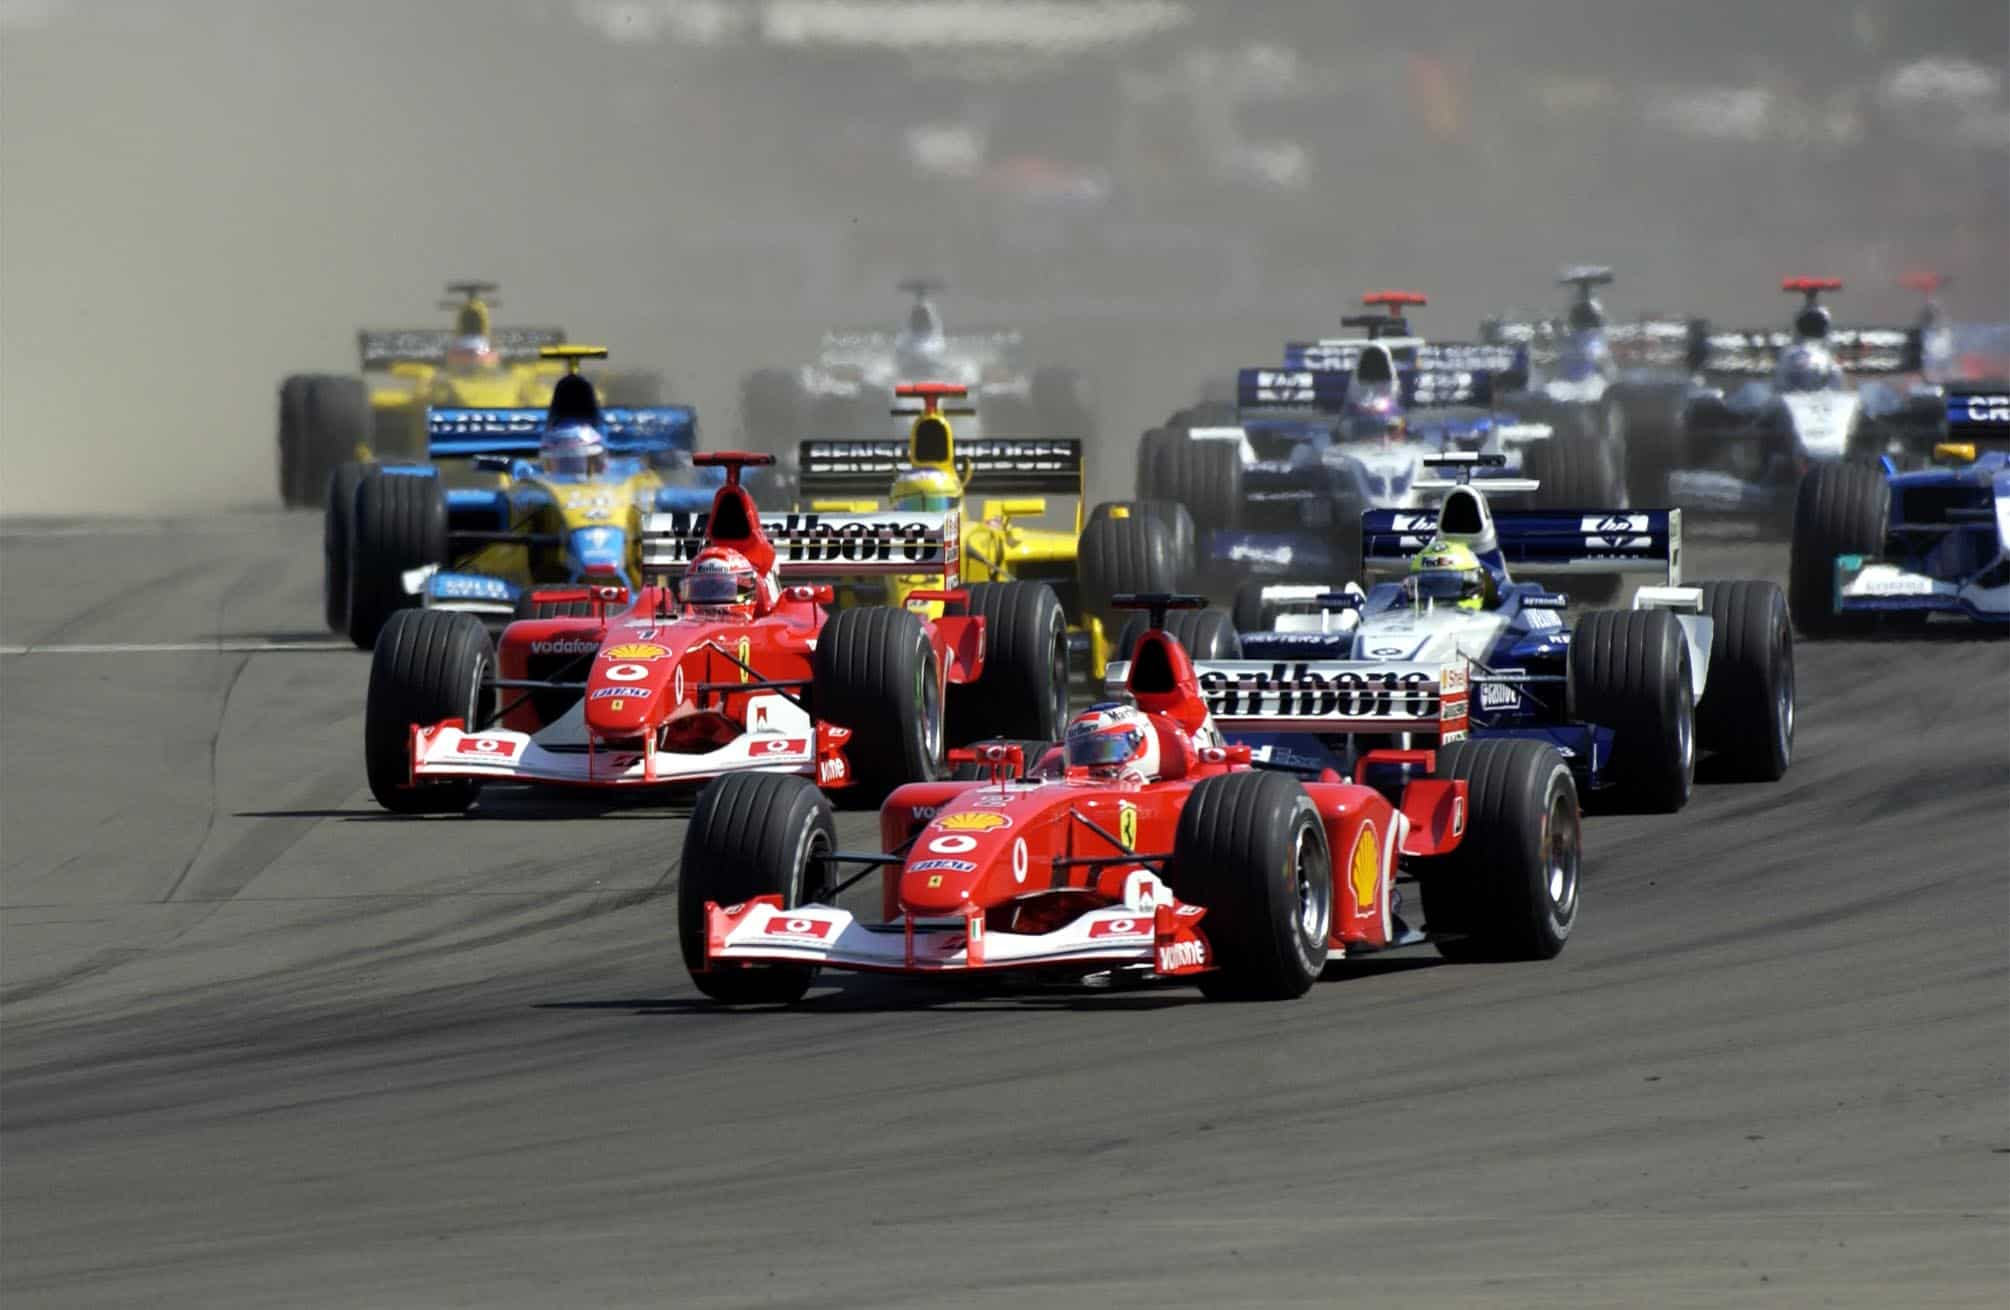 Hungarian GP F1 2002 start Photo Ferrari